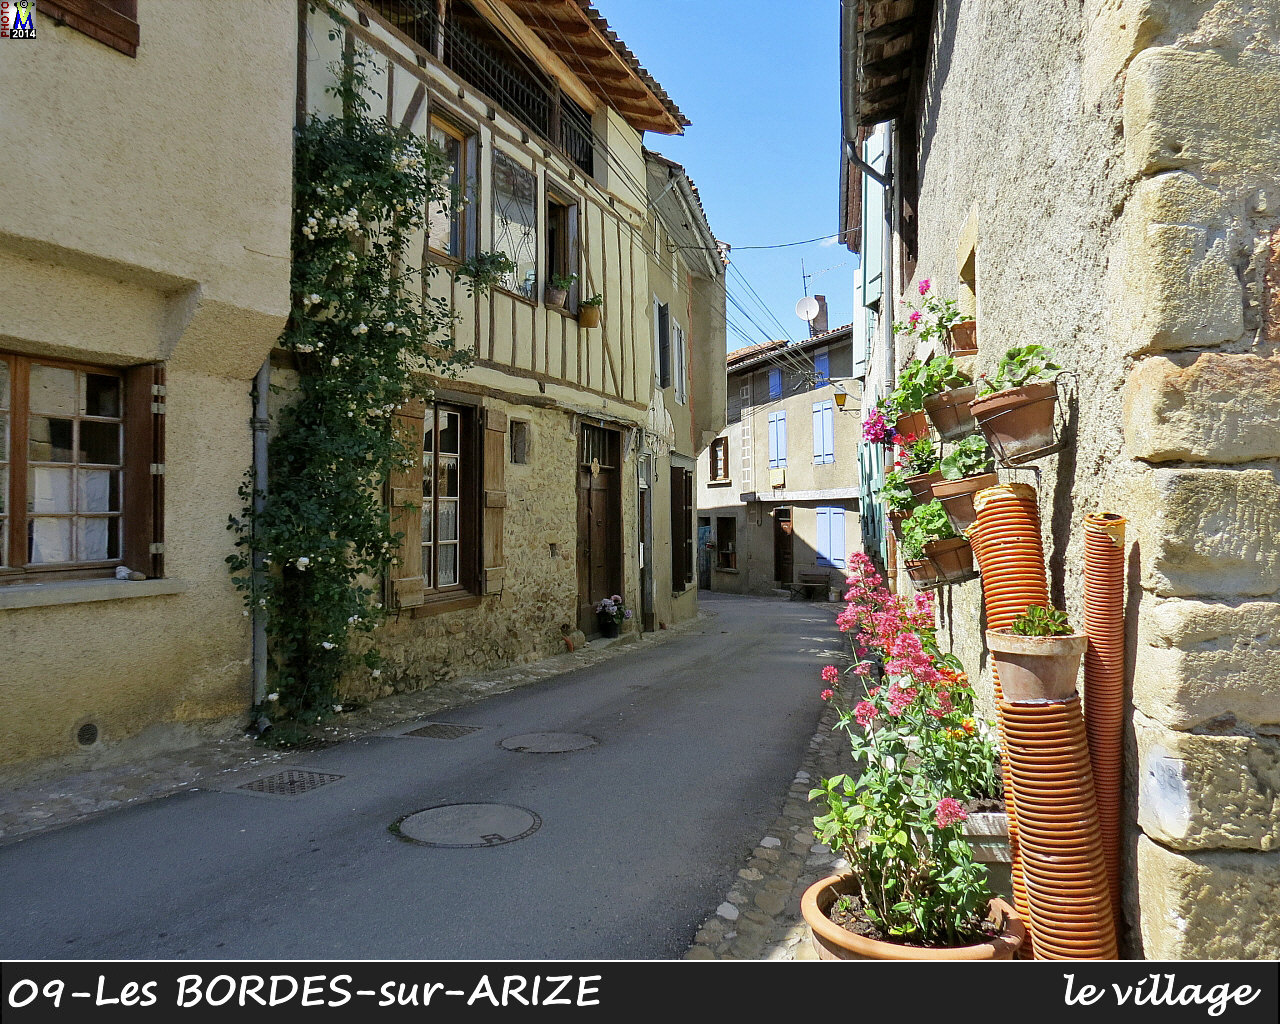 09BORDES-ARIZE_village_116.jpg